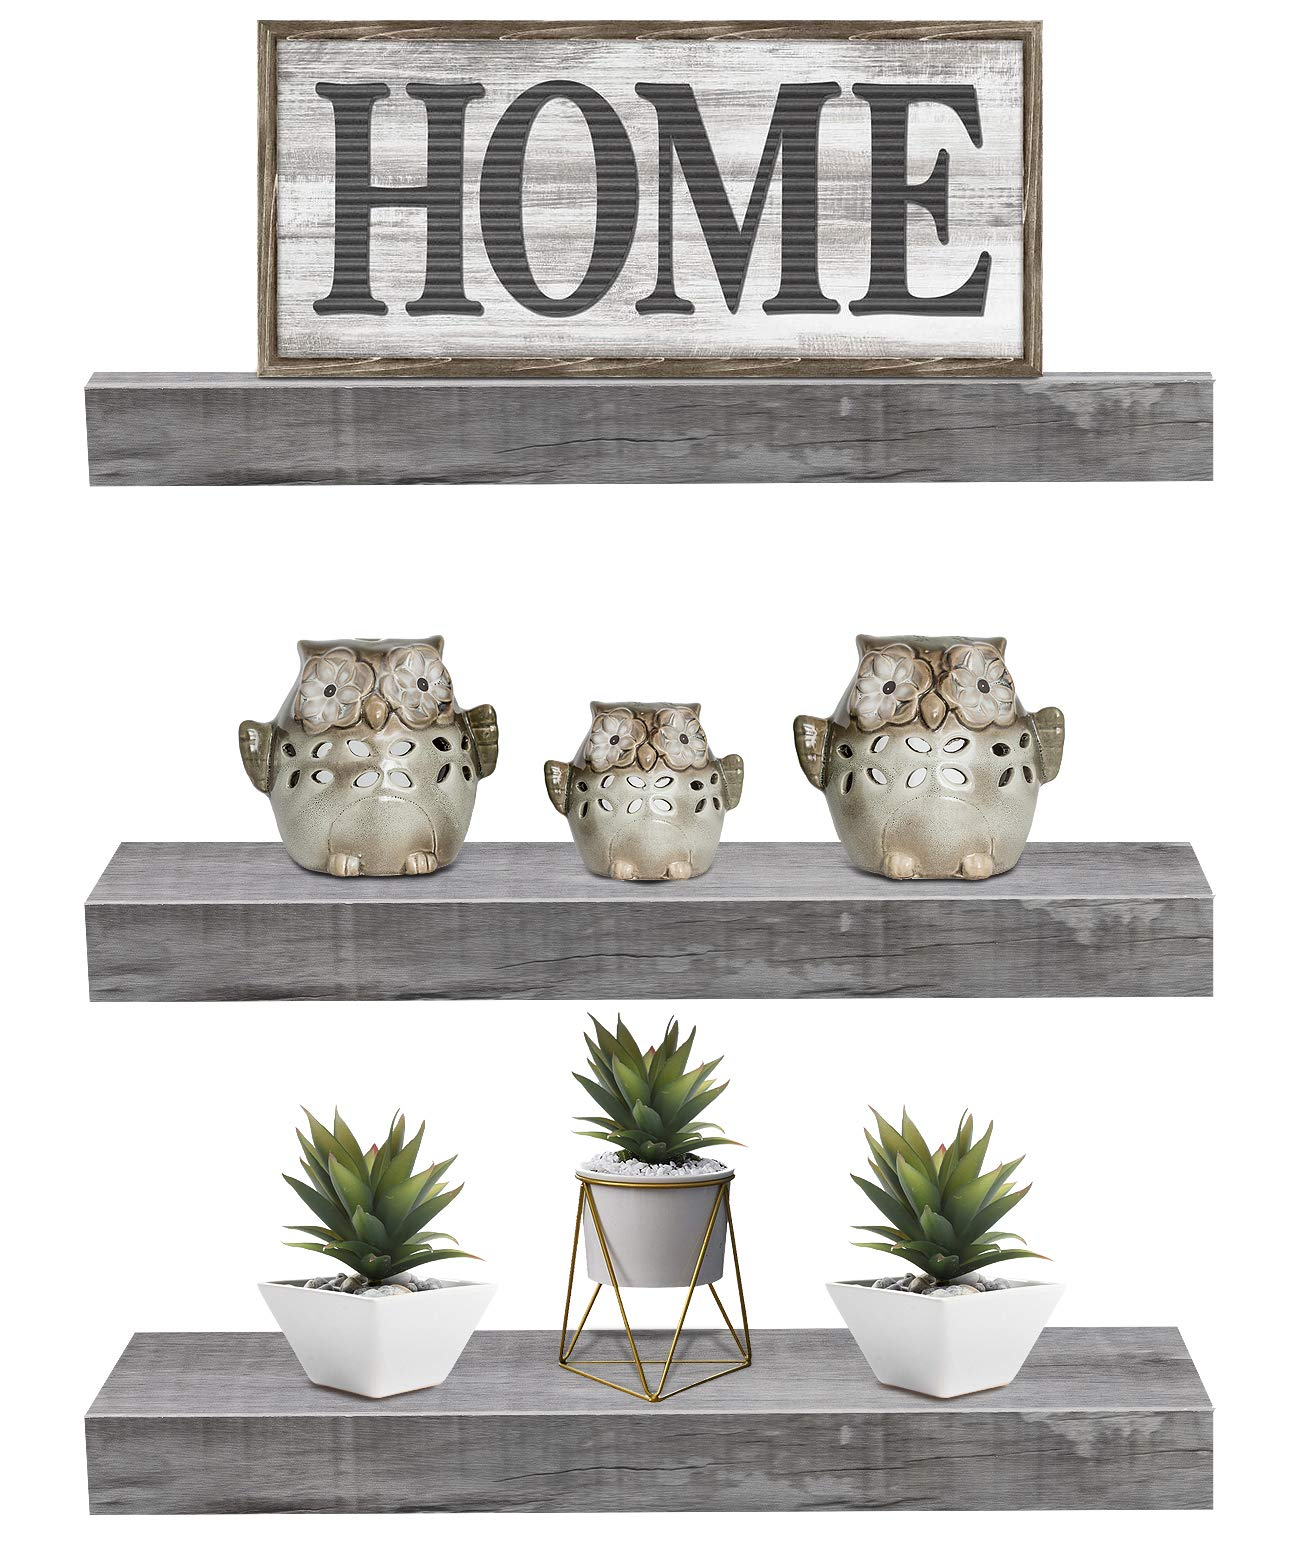 Sorbus Floating Shelf Set - Rustic Wood Hanging Rectangle Wall Shelves - Perfect for Home Décor, Trophy Display, Photo Frames, and More (3-Pack, Grey) by Sorbus